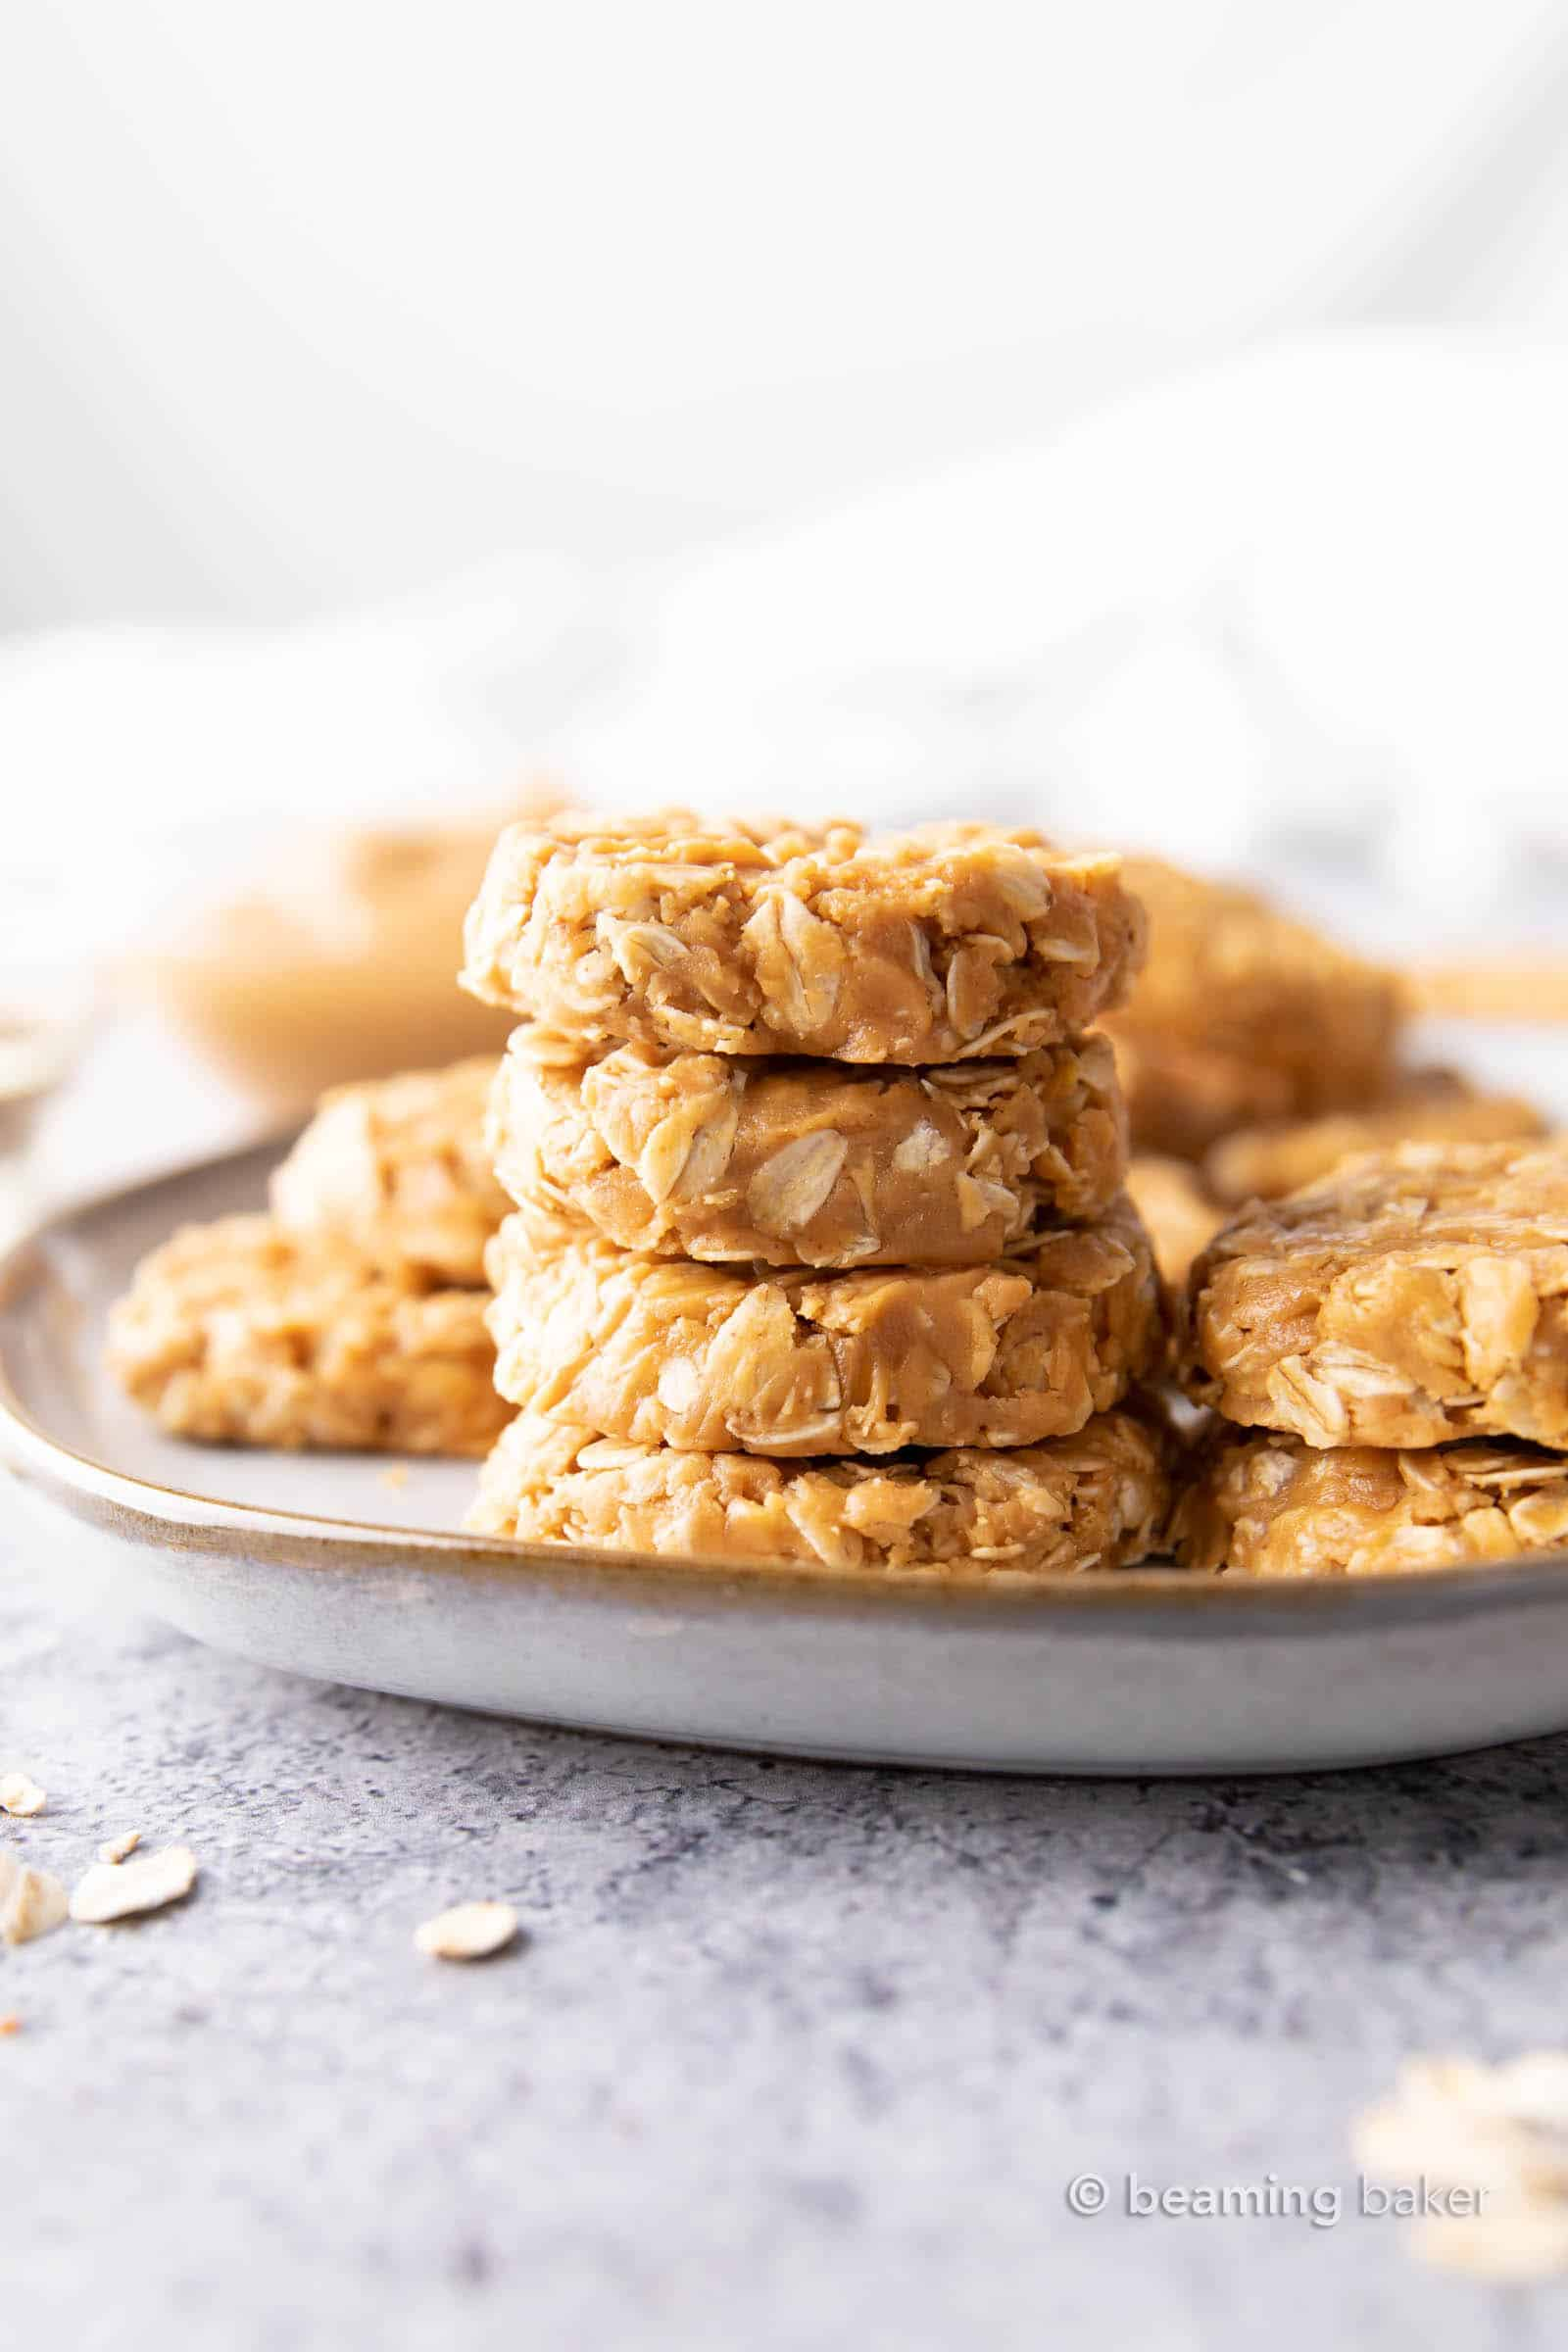 Easy Peanut Butter No Bake Cookies: this 3 ingredient peanut butter no bake cookies recipe is so easy to make! Sweet, chewy and satisfying no bake peanut butter oatmeal cookies. #NoBake #Cookies #PeanutButter #Oatmeal | Recipe at BeamingBaker.com